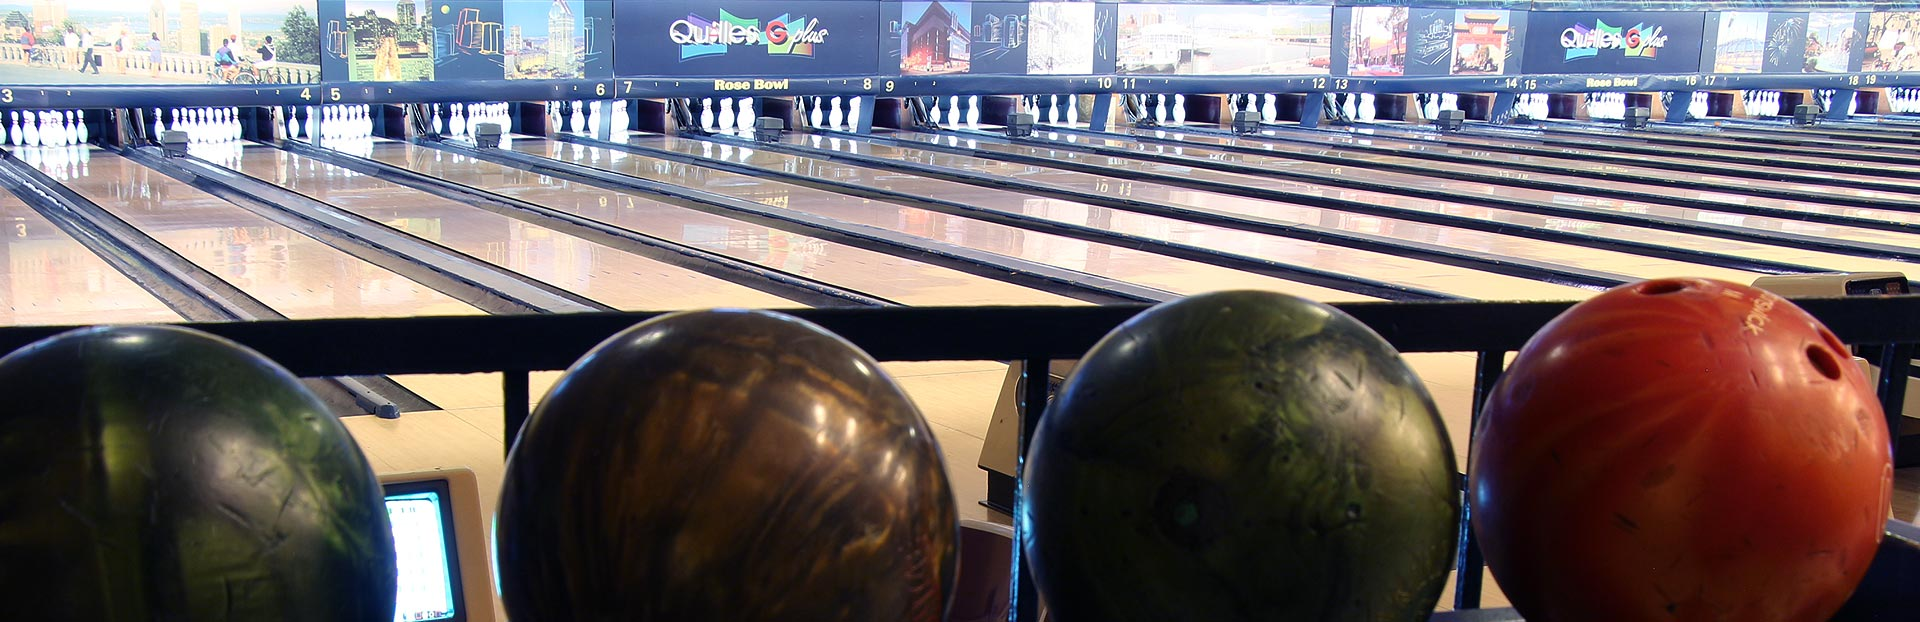 FORUM BOWLING COUPONS